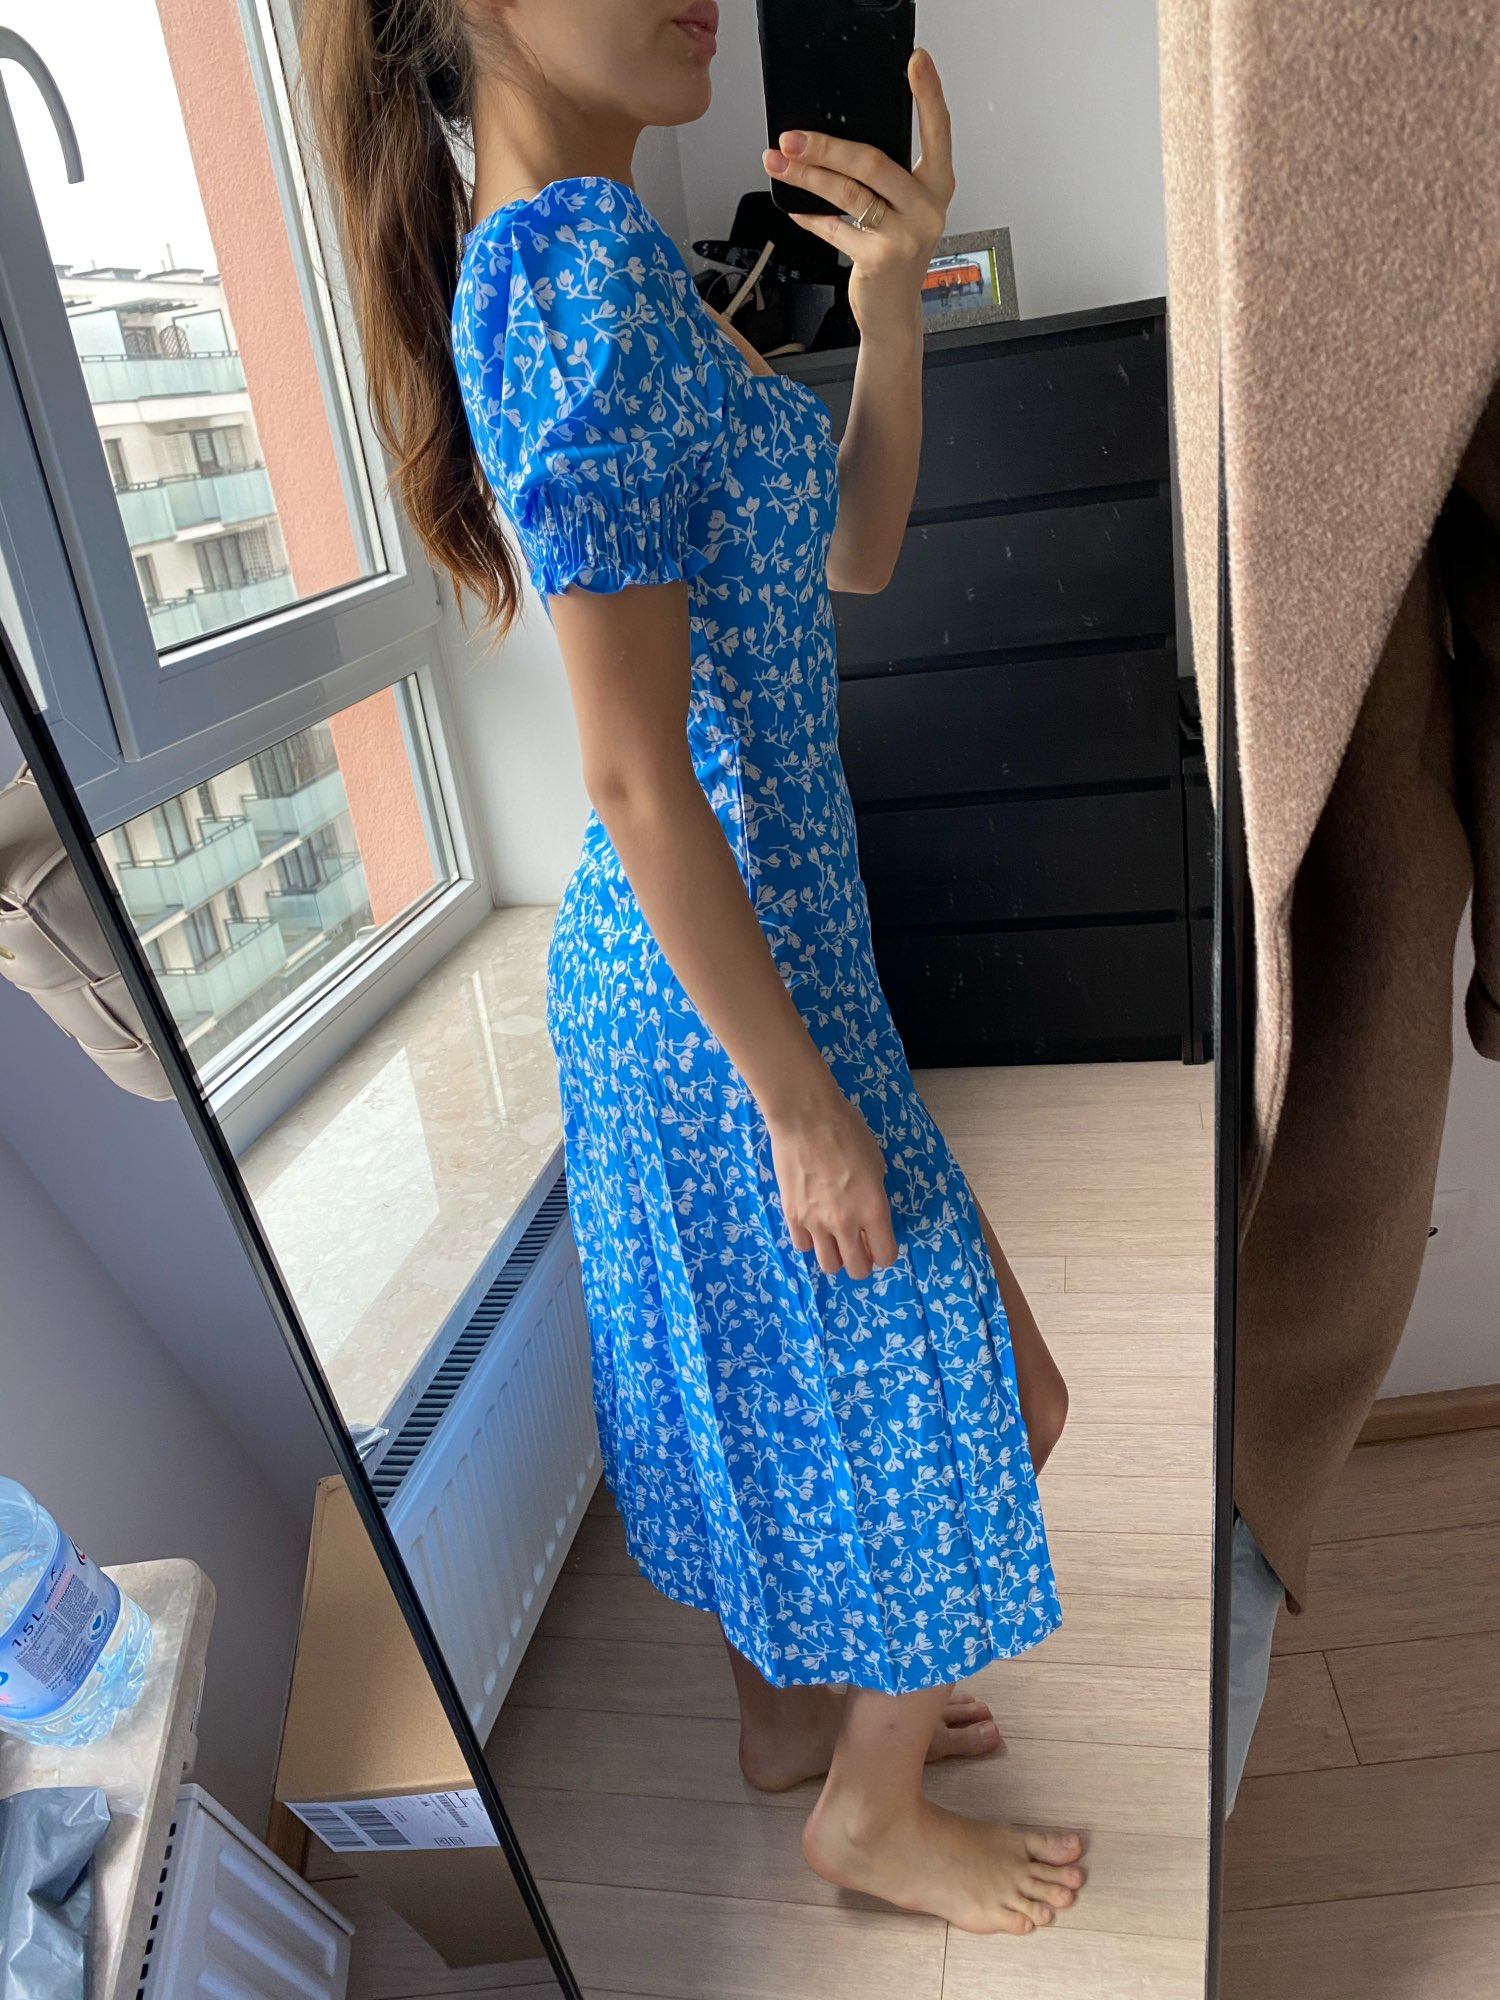 Macheda French Romance Retro Dresses Women Casual Floral Print Square Collar Dresses Ruffles Puff Sleeve Midi Dresses Lady 2019|Dresses|   - AliExpress